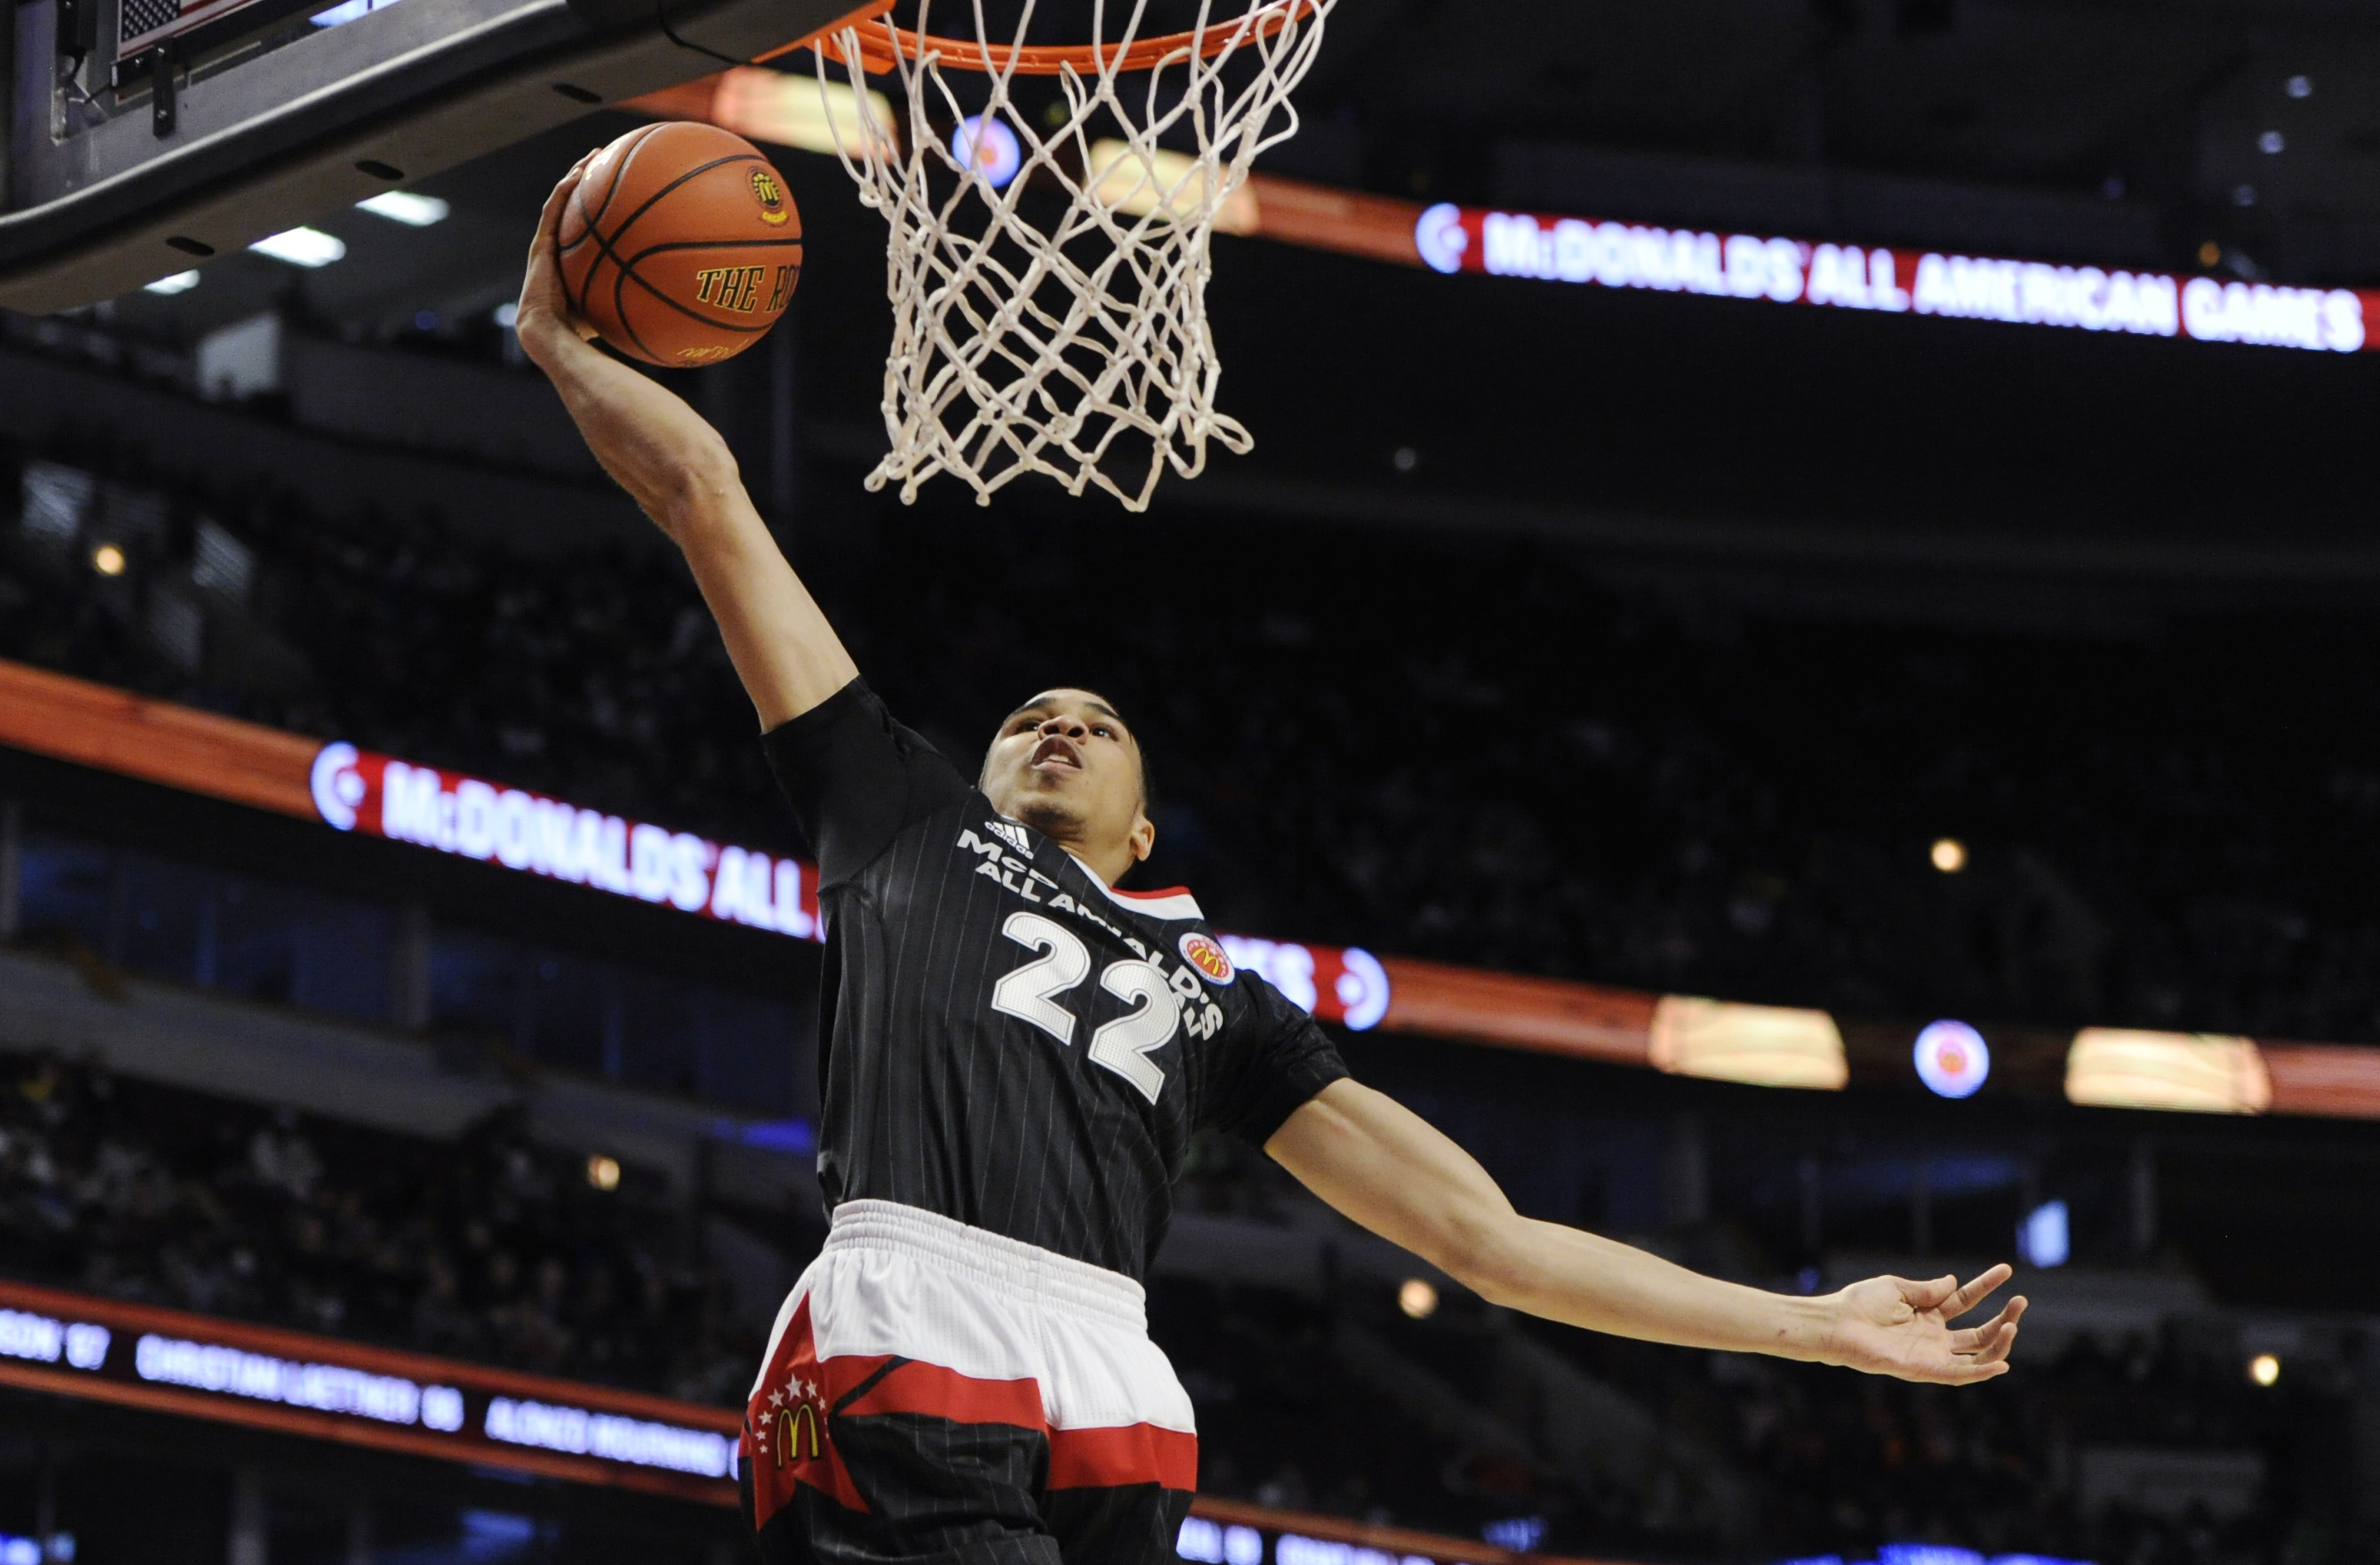 East forward Jayson Tatum, from Chaminade in St. Louis dunks against the West team during the McDonald's All-American boys basketball game, Wednesday, March 30, 2016, in Chicago. The West won 114-107. (AP Photo/Matt Marton)